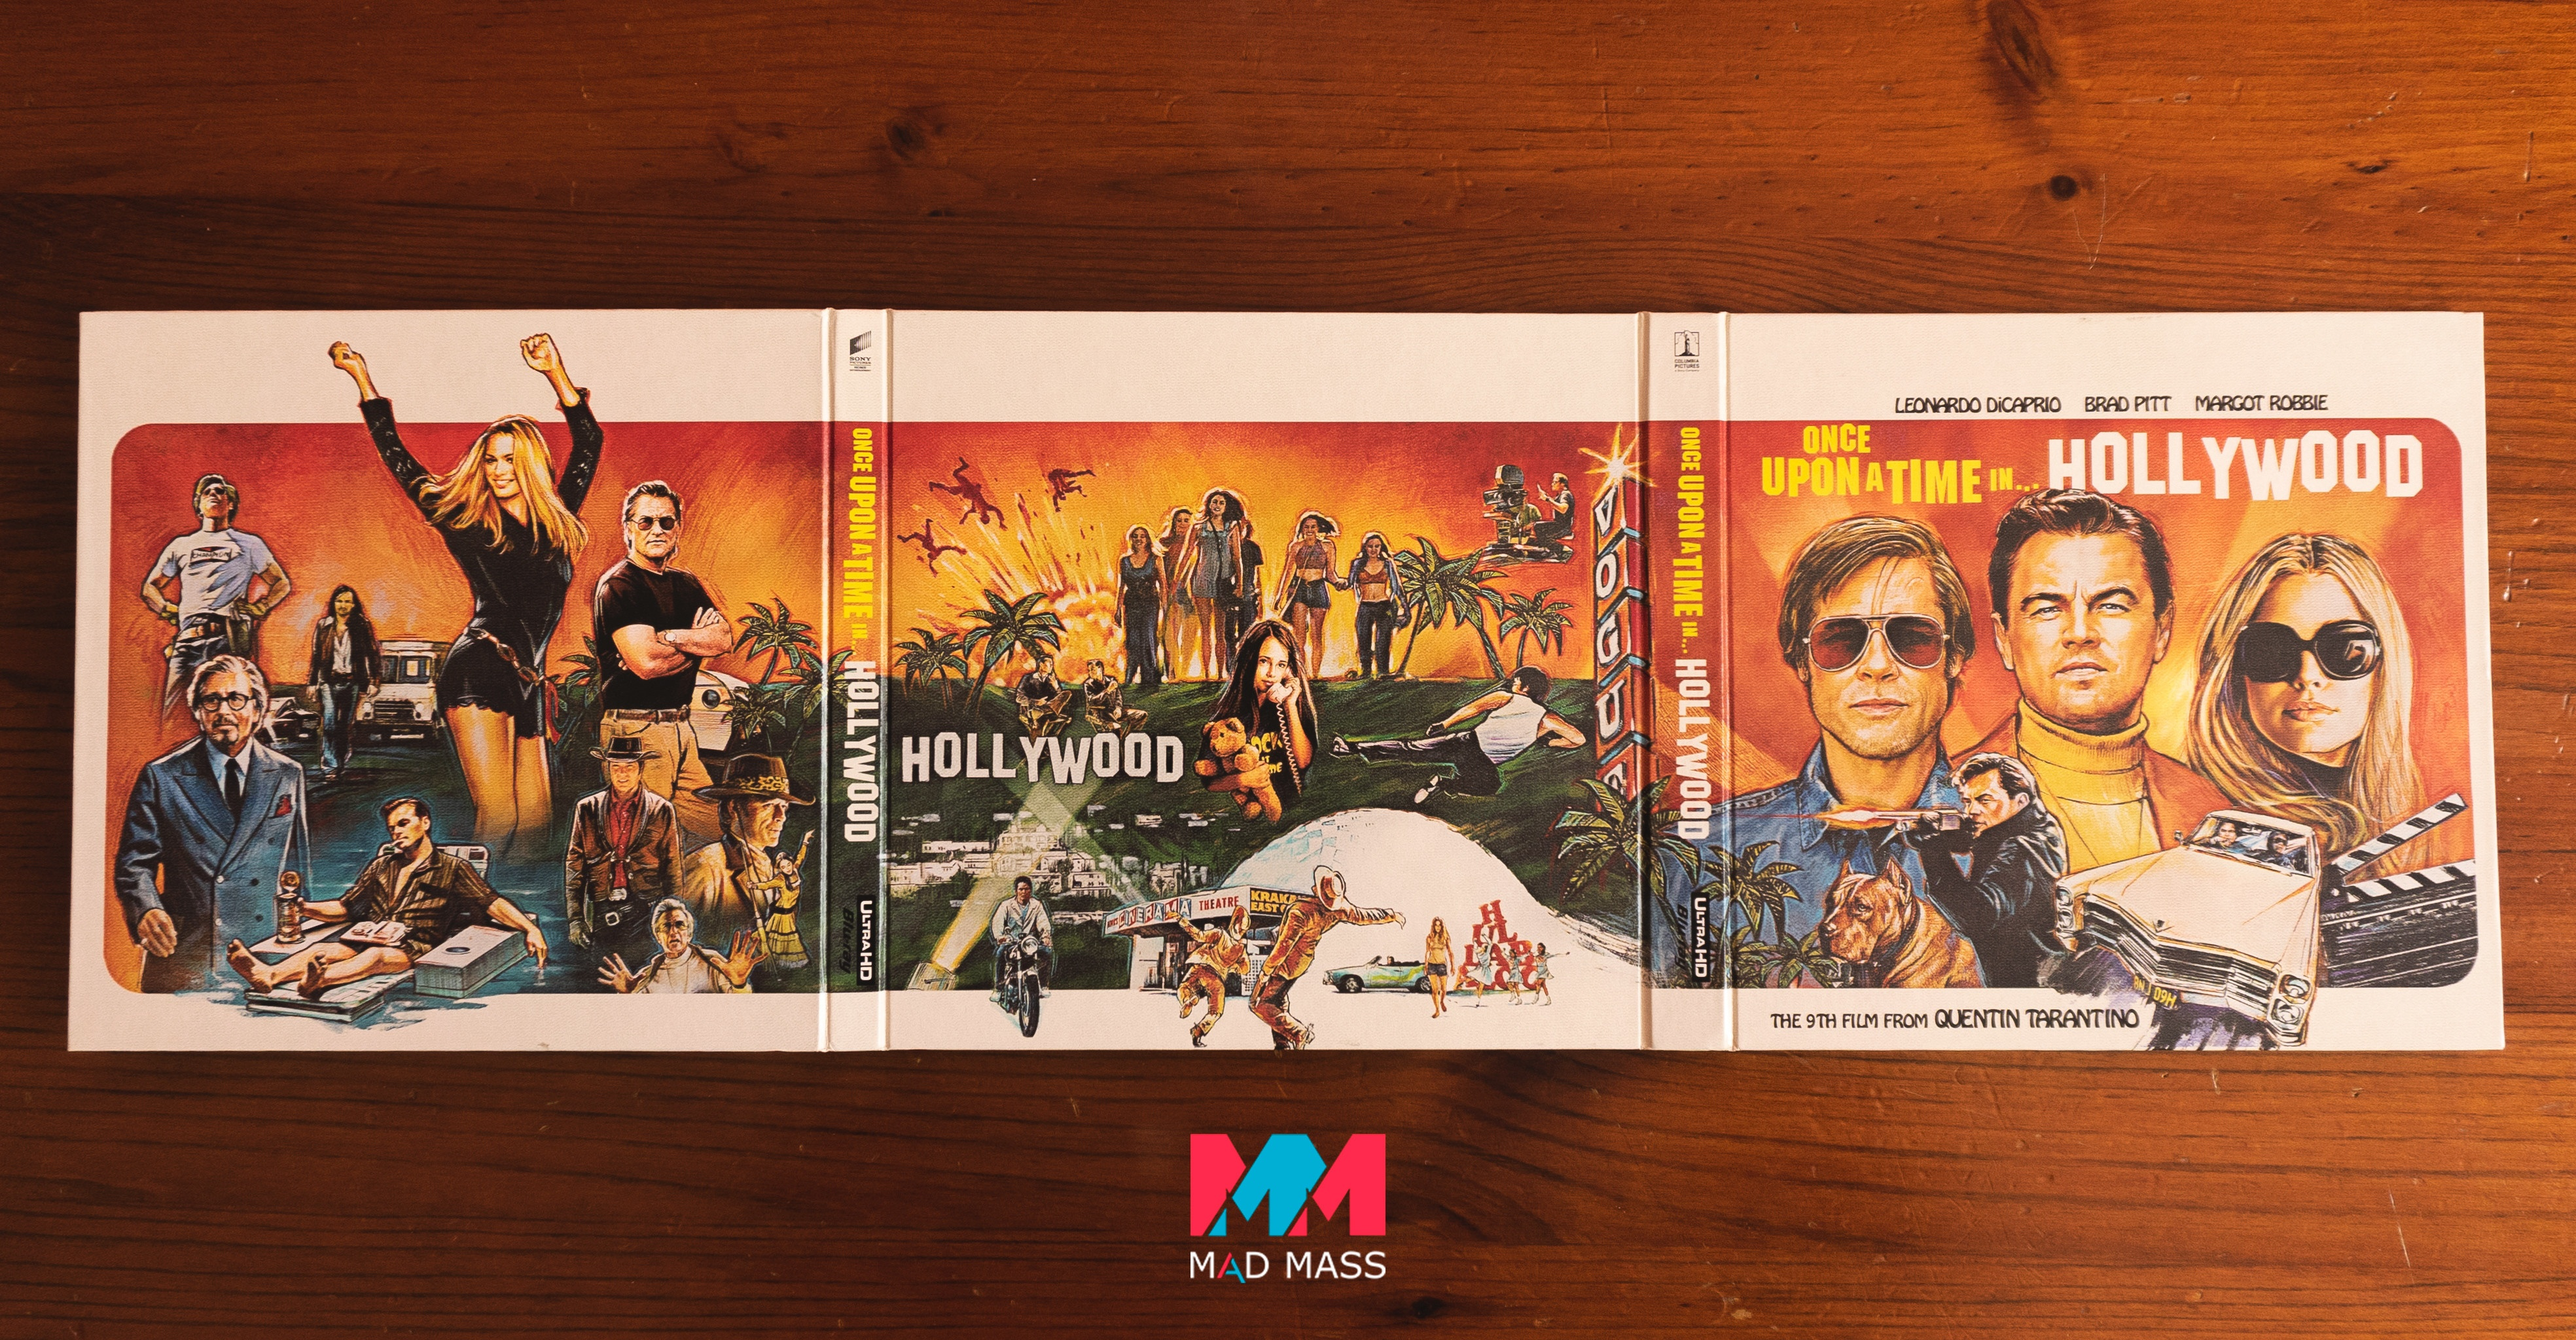 C'era una volta a Hollywood Vinyl Edition Blu-ray 4K